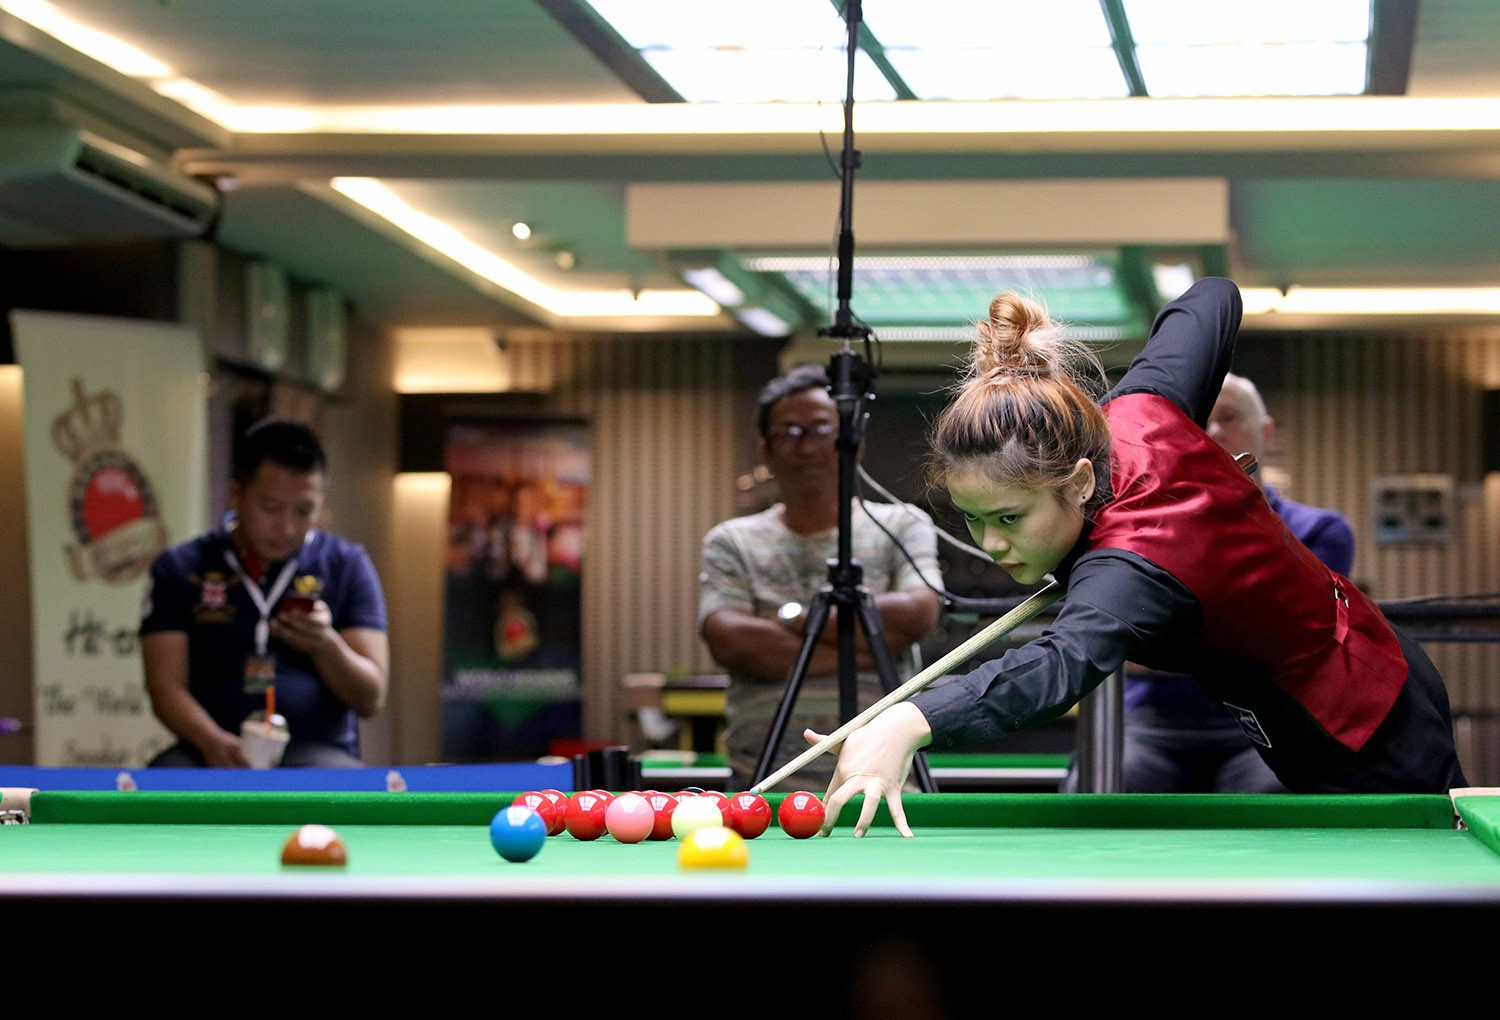 The World Women's Snooker Championship comes on the back of the inaugural Women's Snooker World Cup in Bangkok, where hosts Thailand triumphed ©WPBSA